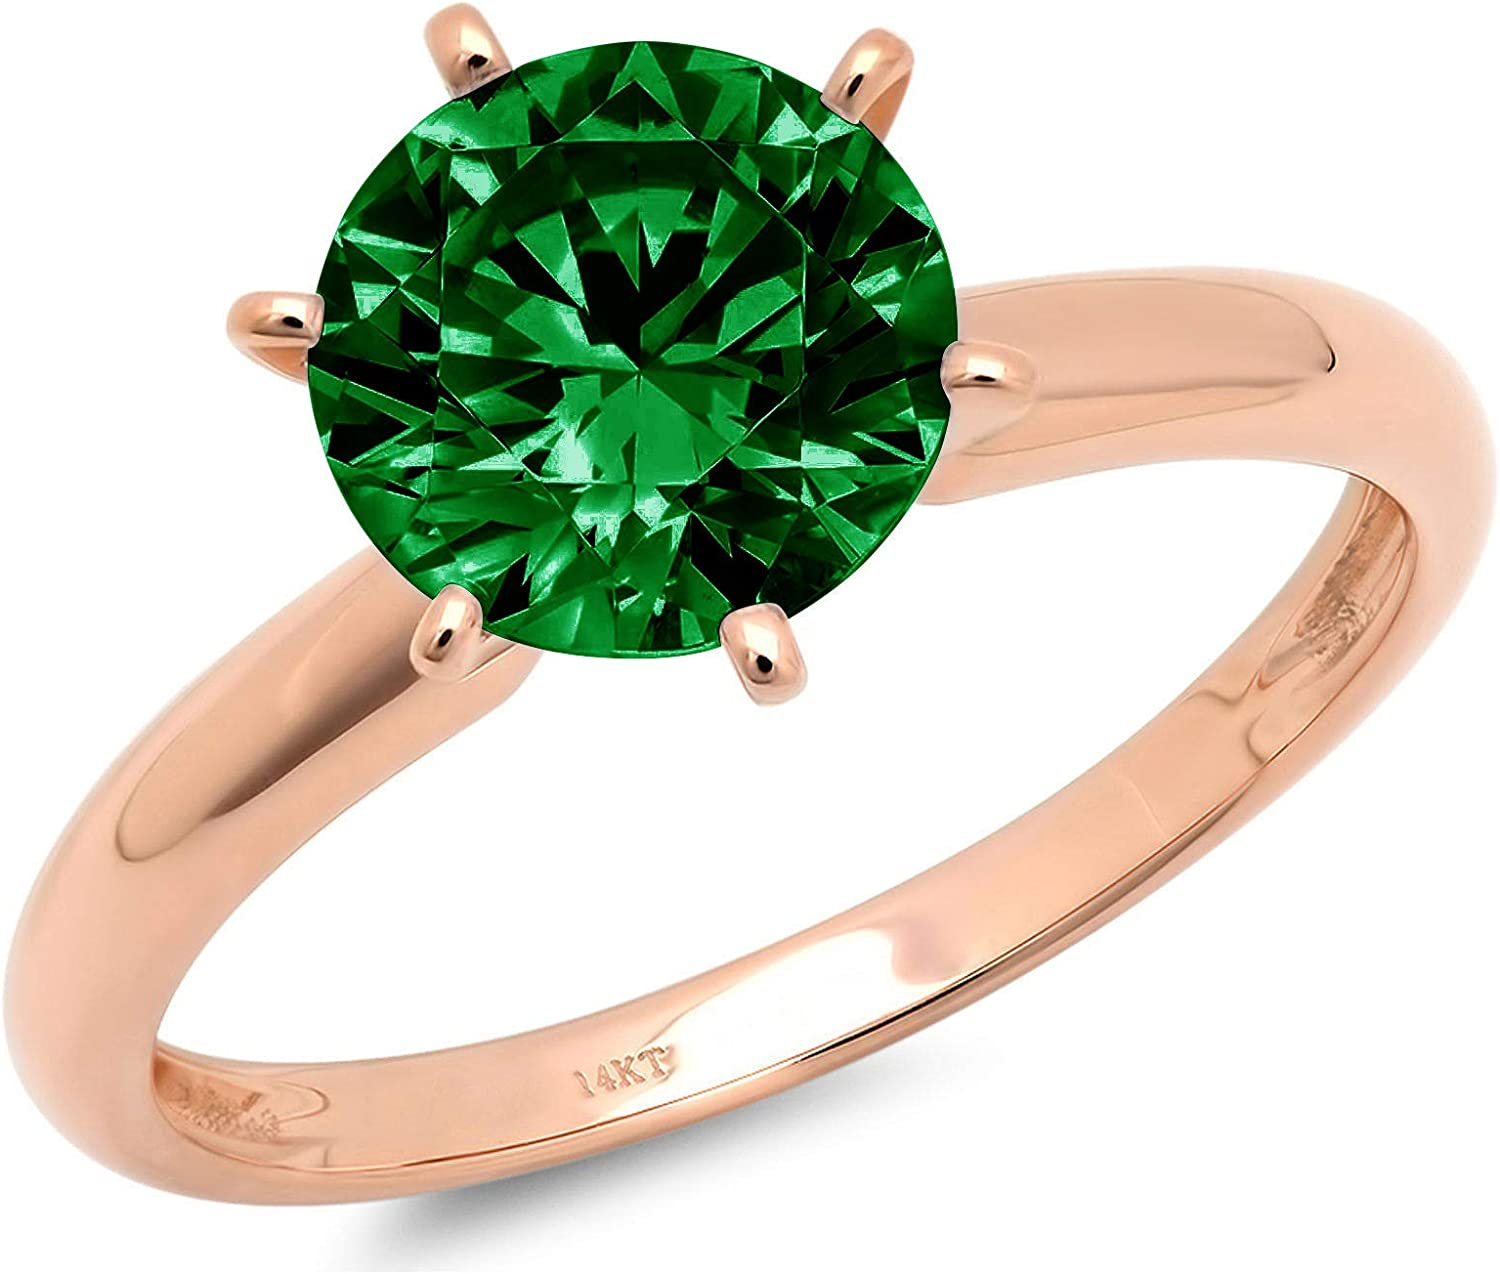 0.4ct Brilliant Round Cut Solitaire Flawless Simulated Cubic Zirconia Green Emerald Ideal VVS1 6-Prong Engagement Wedding Bridal Promise Anniversary Designer Ring in Solid 14k rose Gold for Women